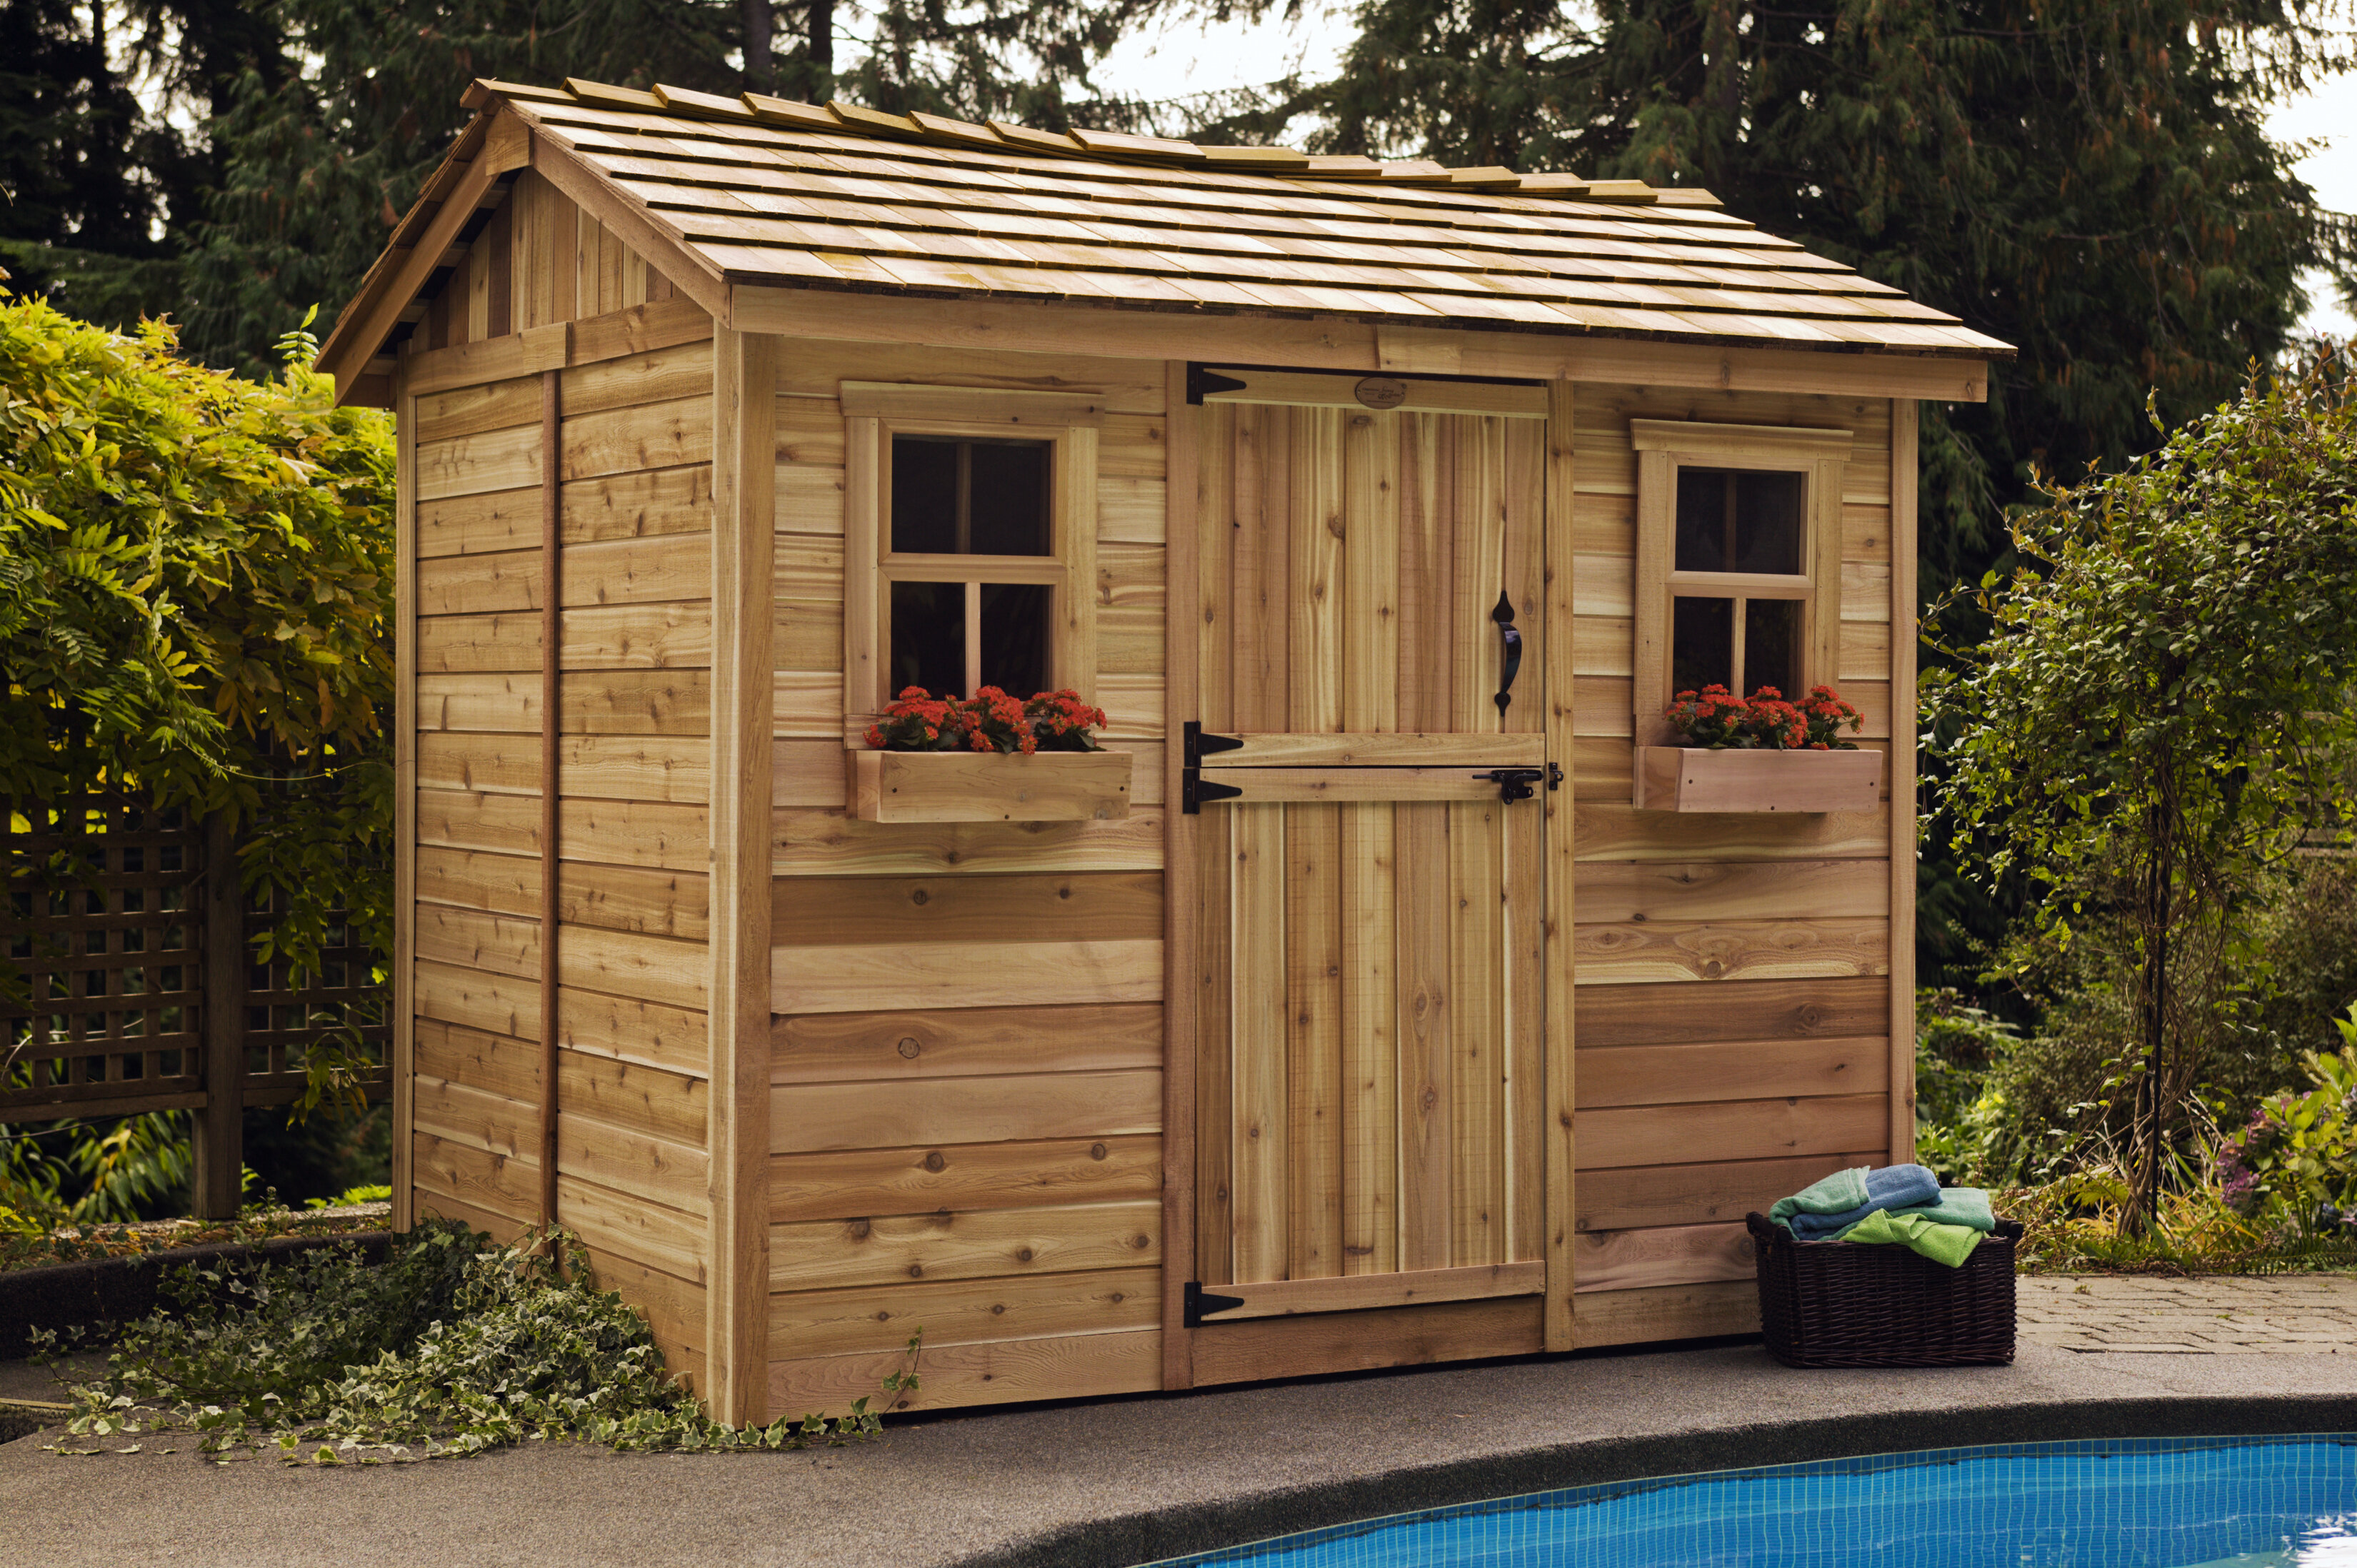 Cabana 9 ft. W x 9 ft. D Wooden Storage Shed